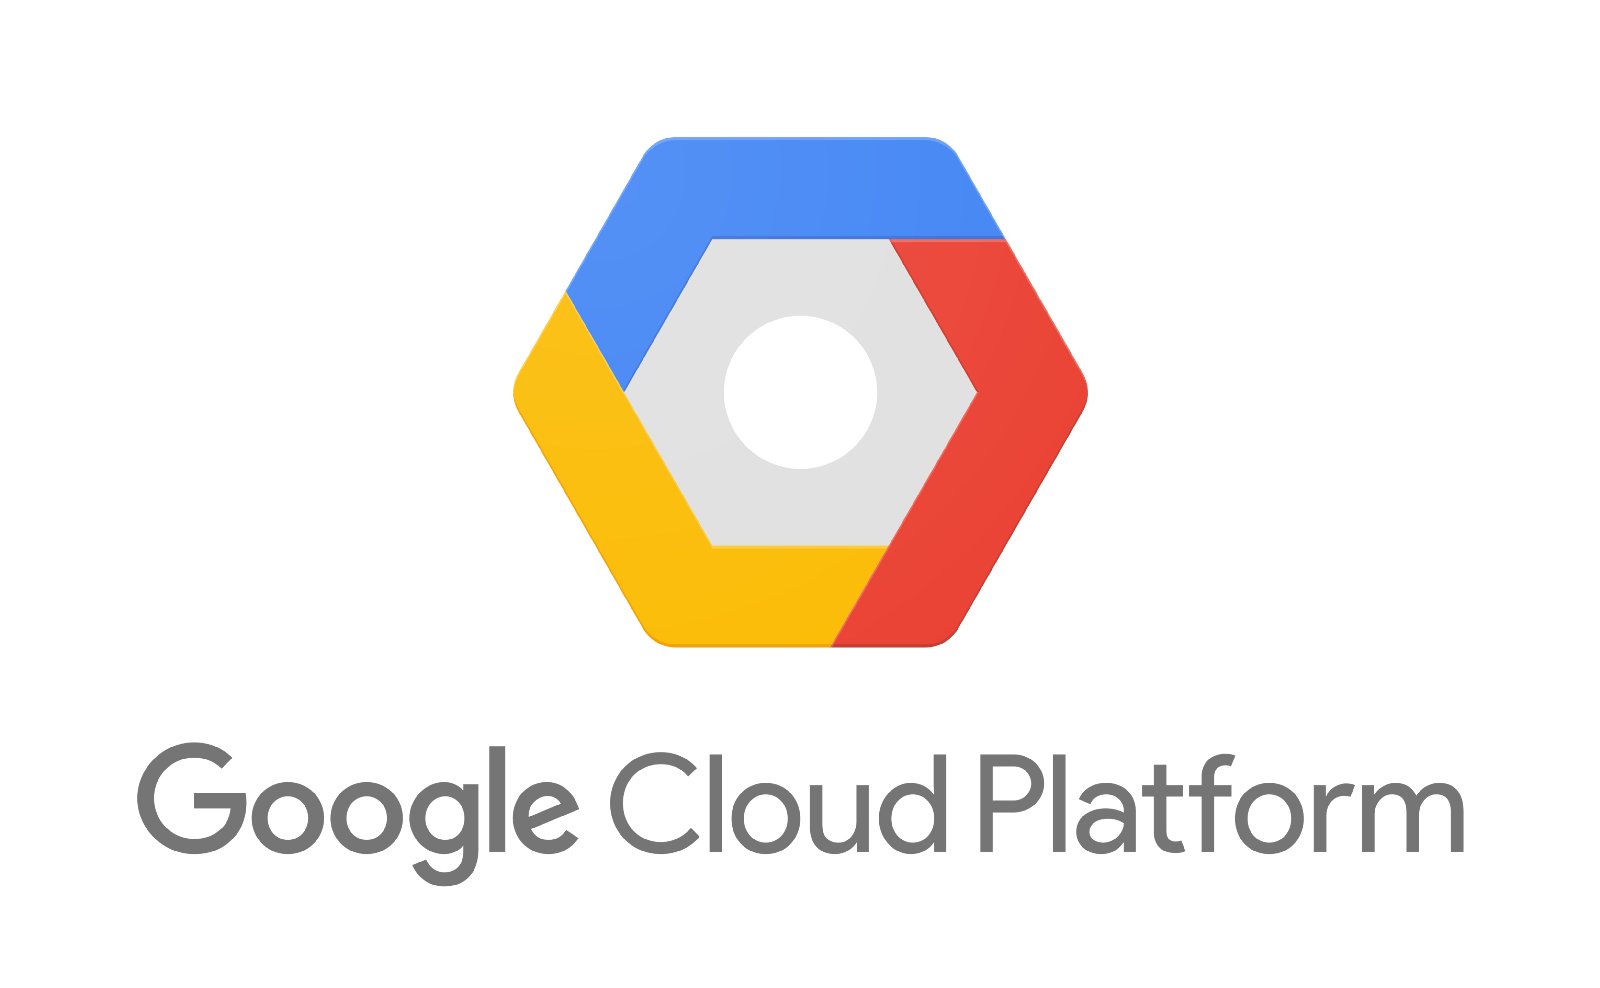 Javascript Cloud Google Cloud Storage Pros Cons And How To Use It With Javascript